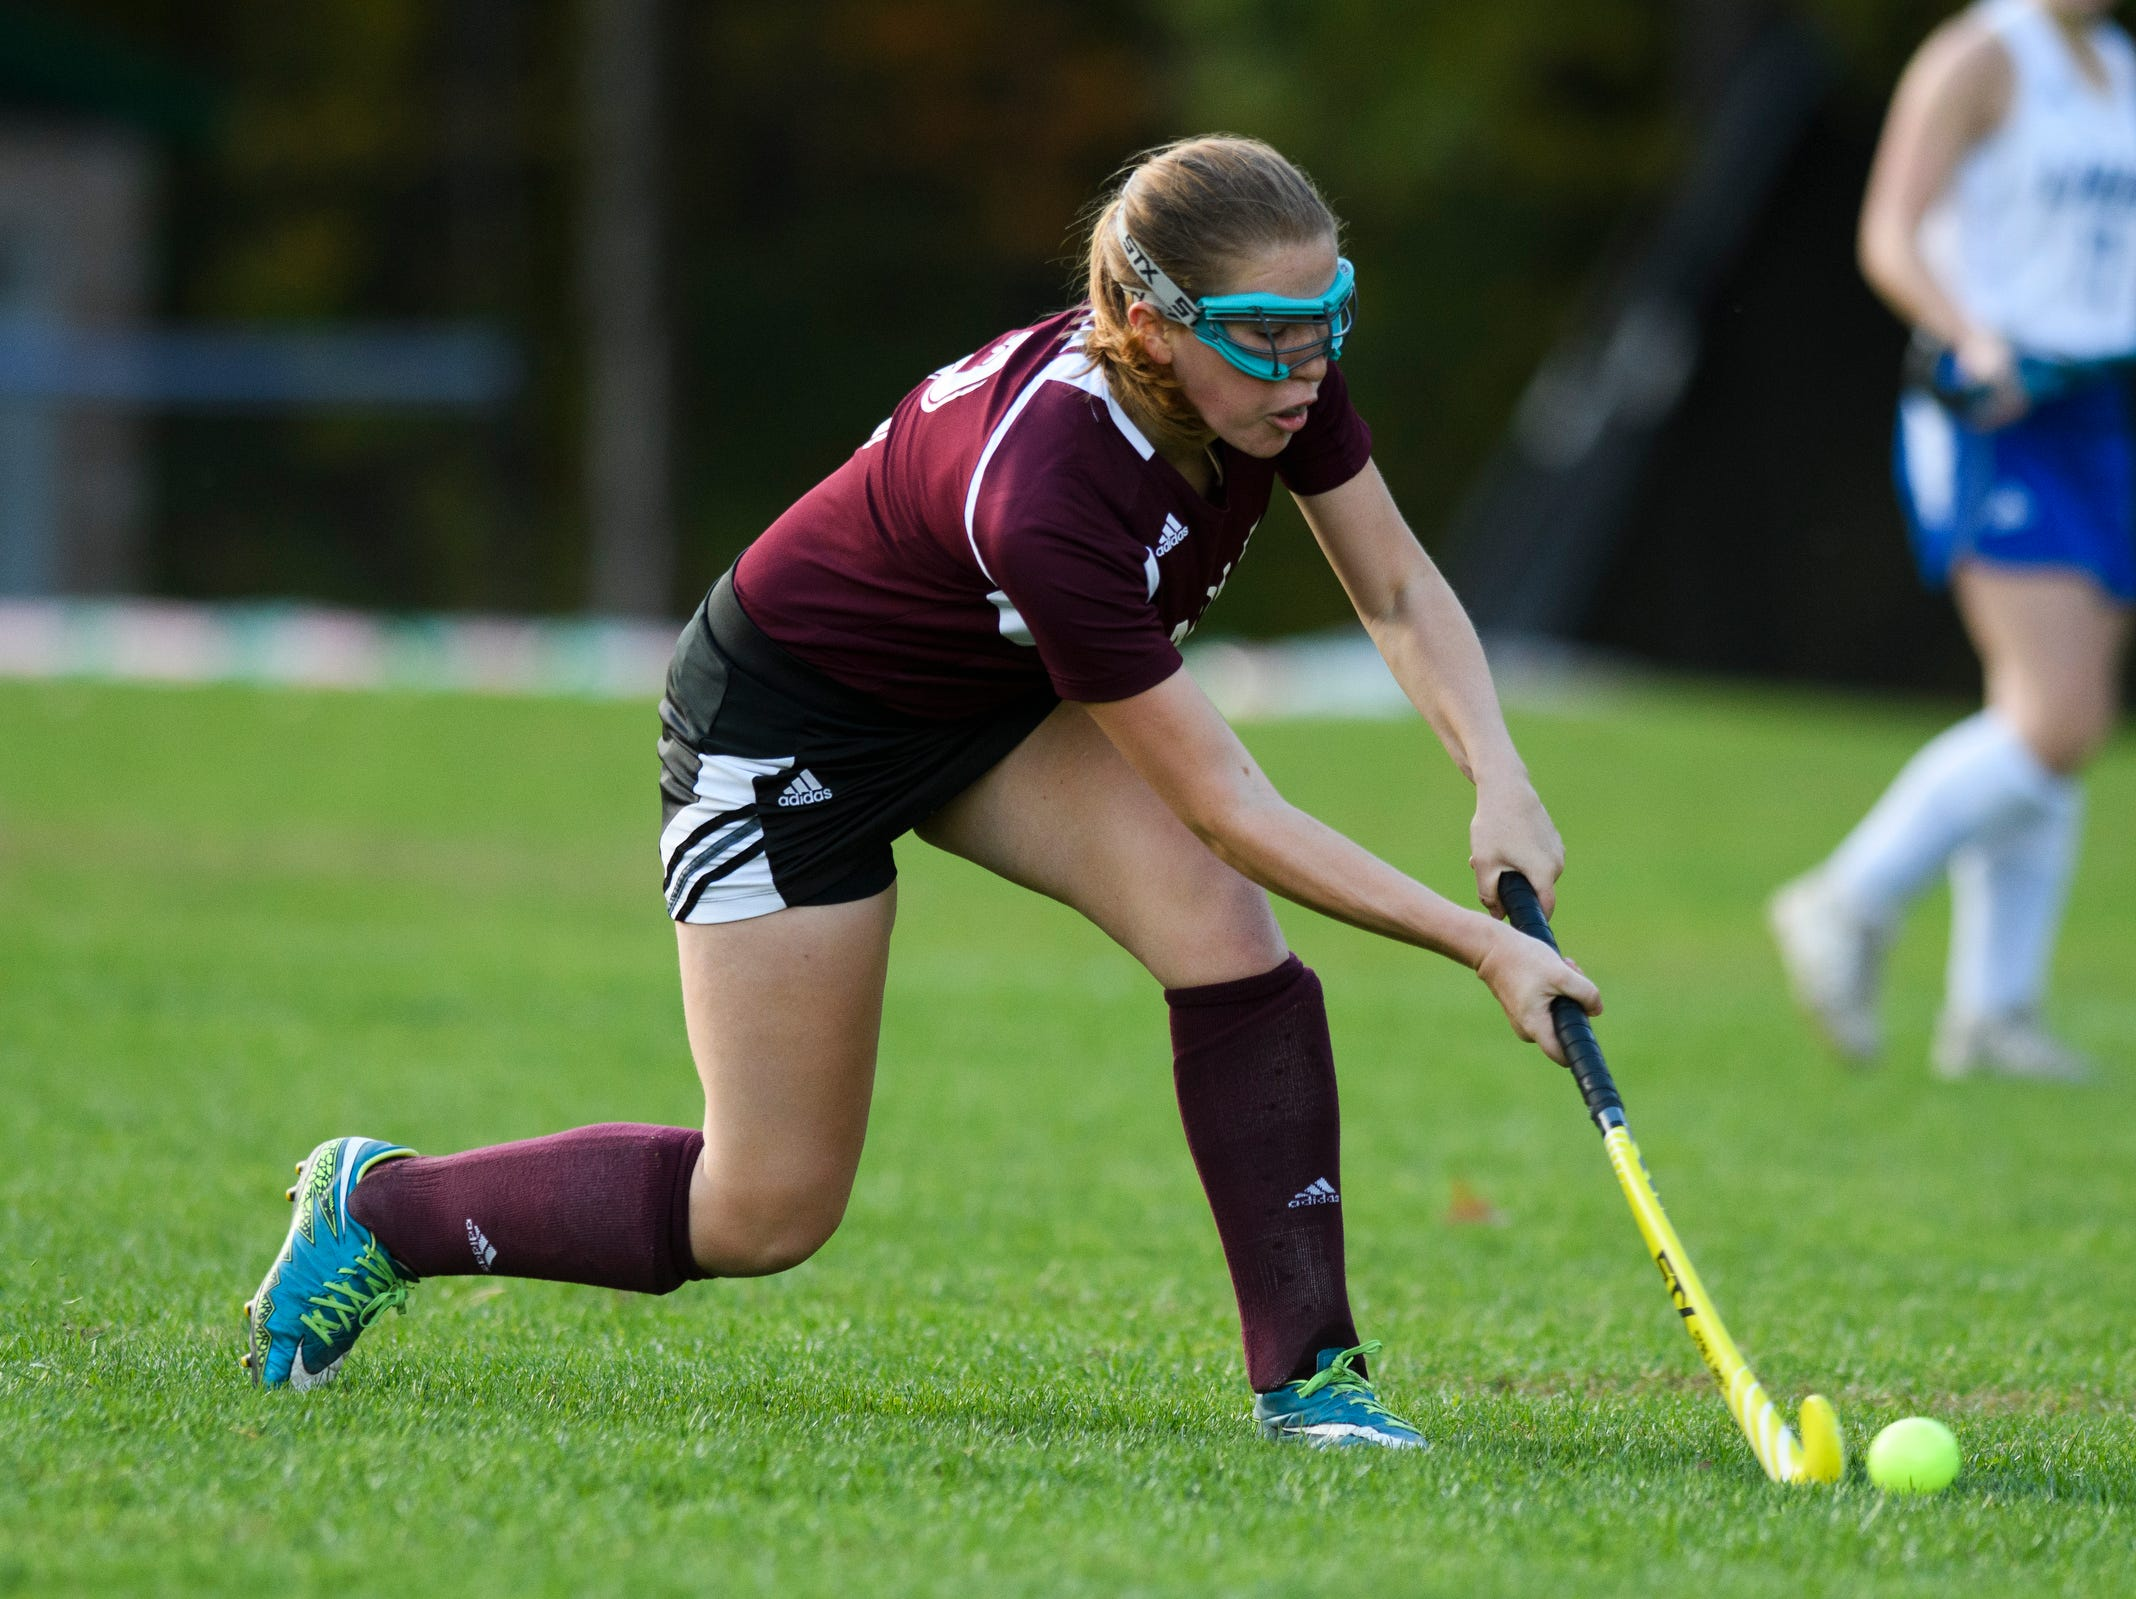 Mt. Abrahams Elizabeth Porter (2) hits the ball down the field during the field hockey game between Mount Abraham and Colchester at Colchester High School on Saturday morning October 20, 2018 in Colchester.